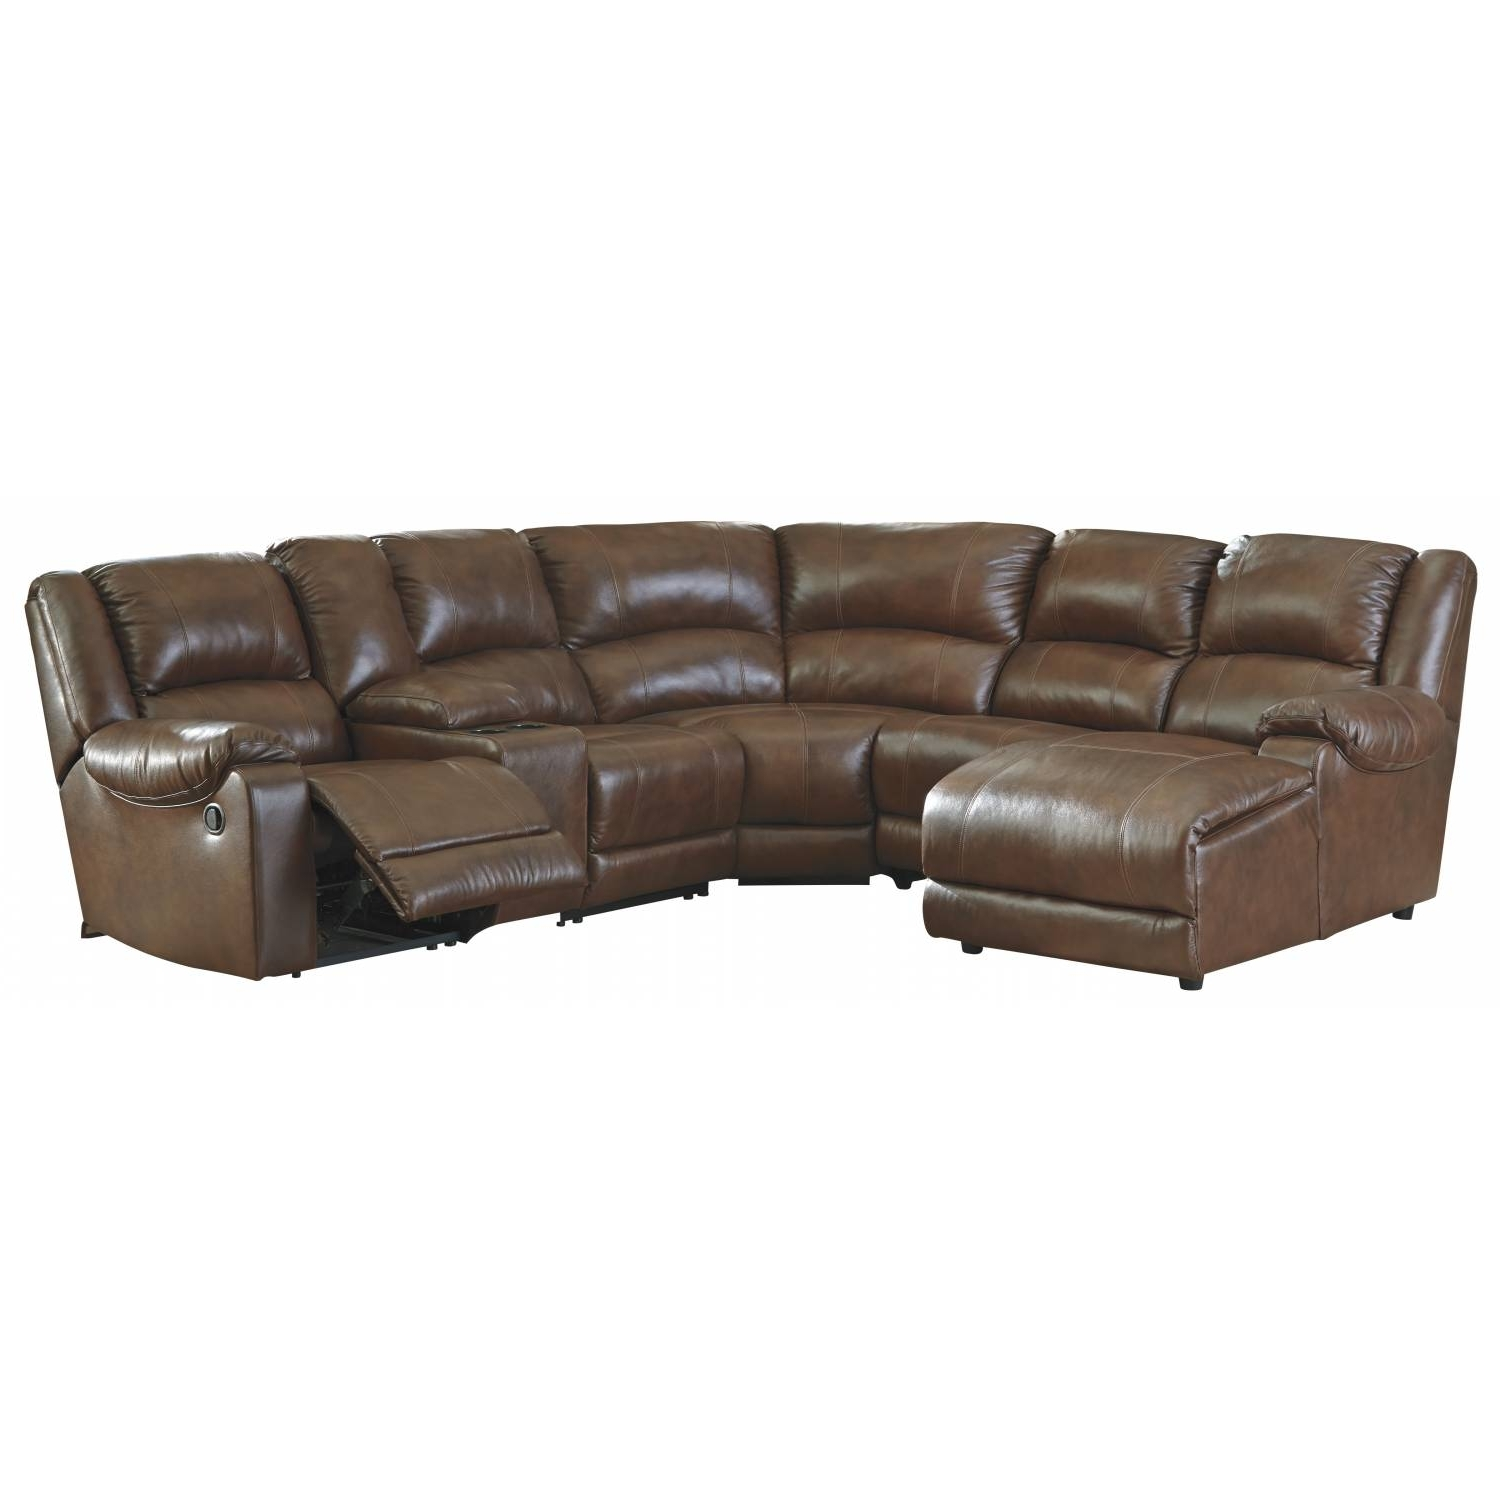 [%Sectional Sofas Discount – Sale Off 20% Furniture In San Francisco Intended For Well Known San Francisco Sectional Sofas|San Francisco Sectional Sofas With Regard To Most Up To Date Sectional Sofas Discount – Sale Off 20% Furniture In San Francisco|2018 San Francisco Sectional Sofas Intended For Sectional Sofas Discount – Sale Off 20% Furniture In San Francisco|2018 Sectional Sofas Discount – Sale Off 20% Furniture In San Francisco Inside San Francisco Sectional Sofas%] (View 1 of 20)